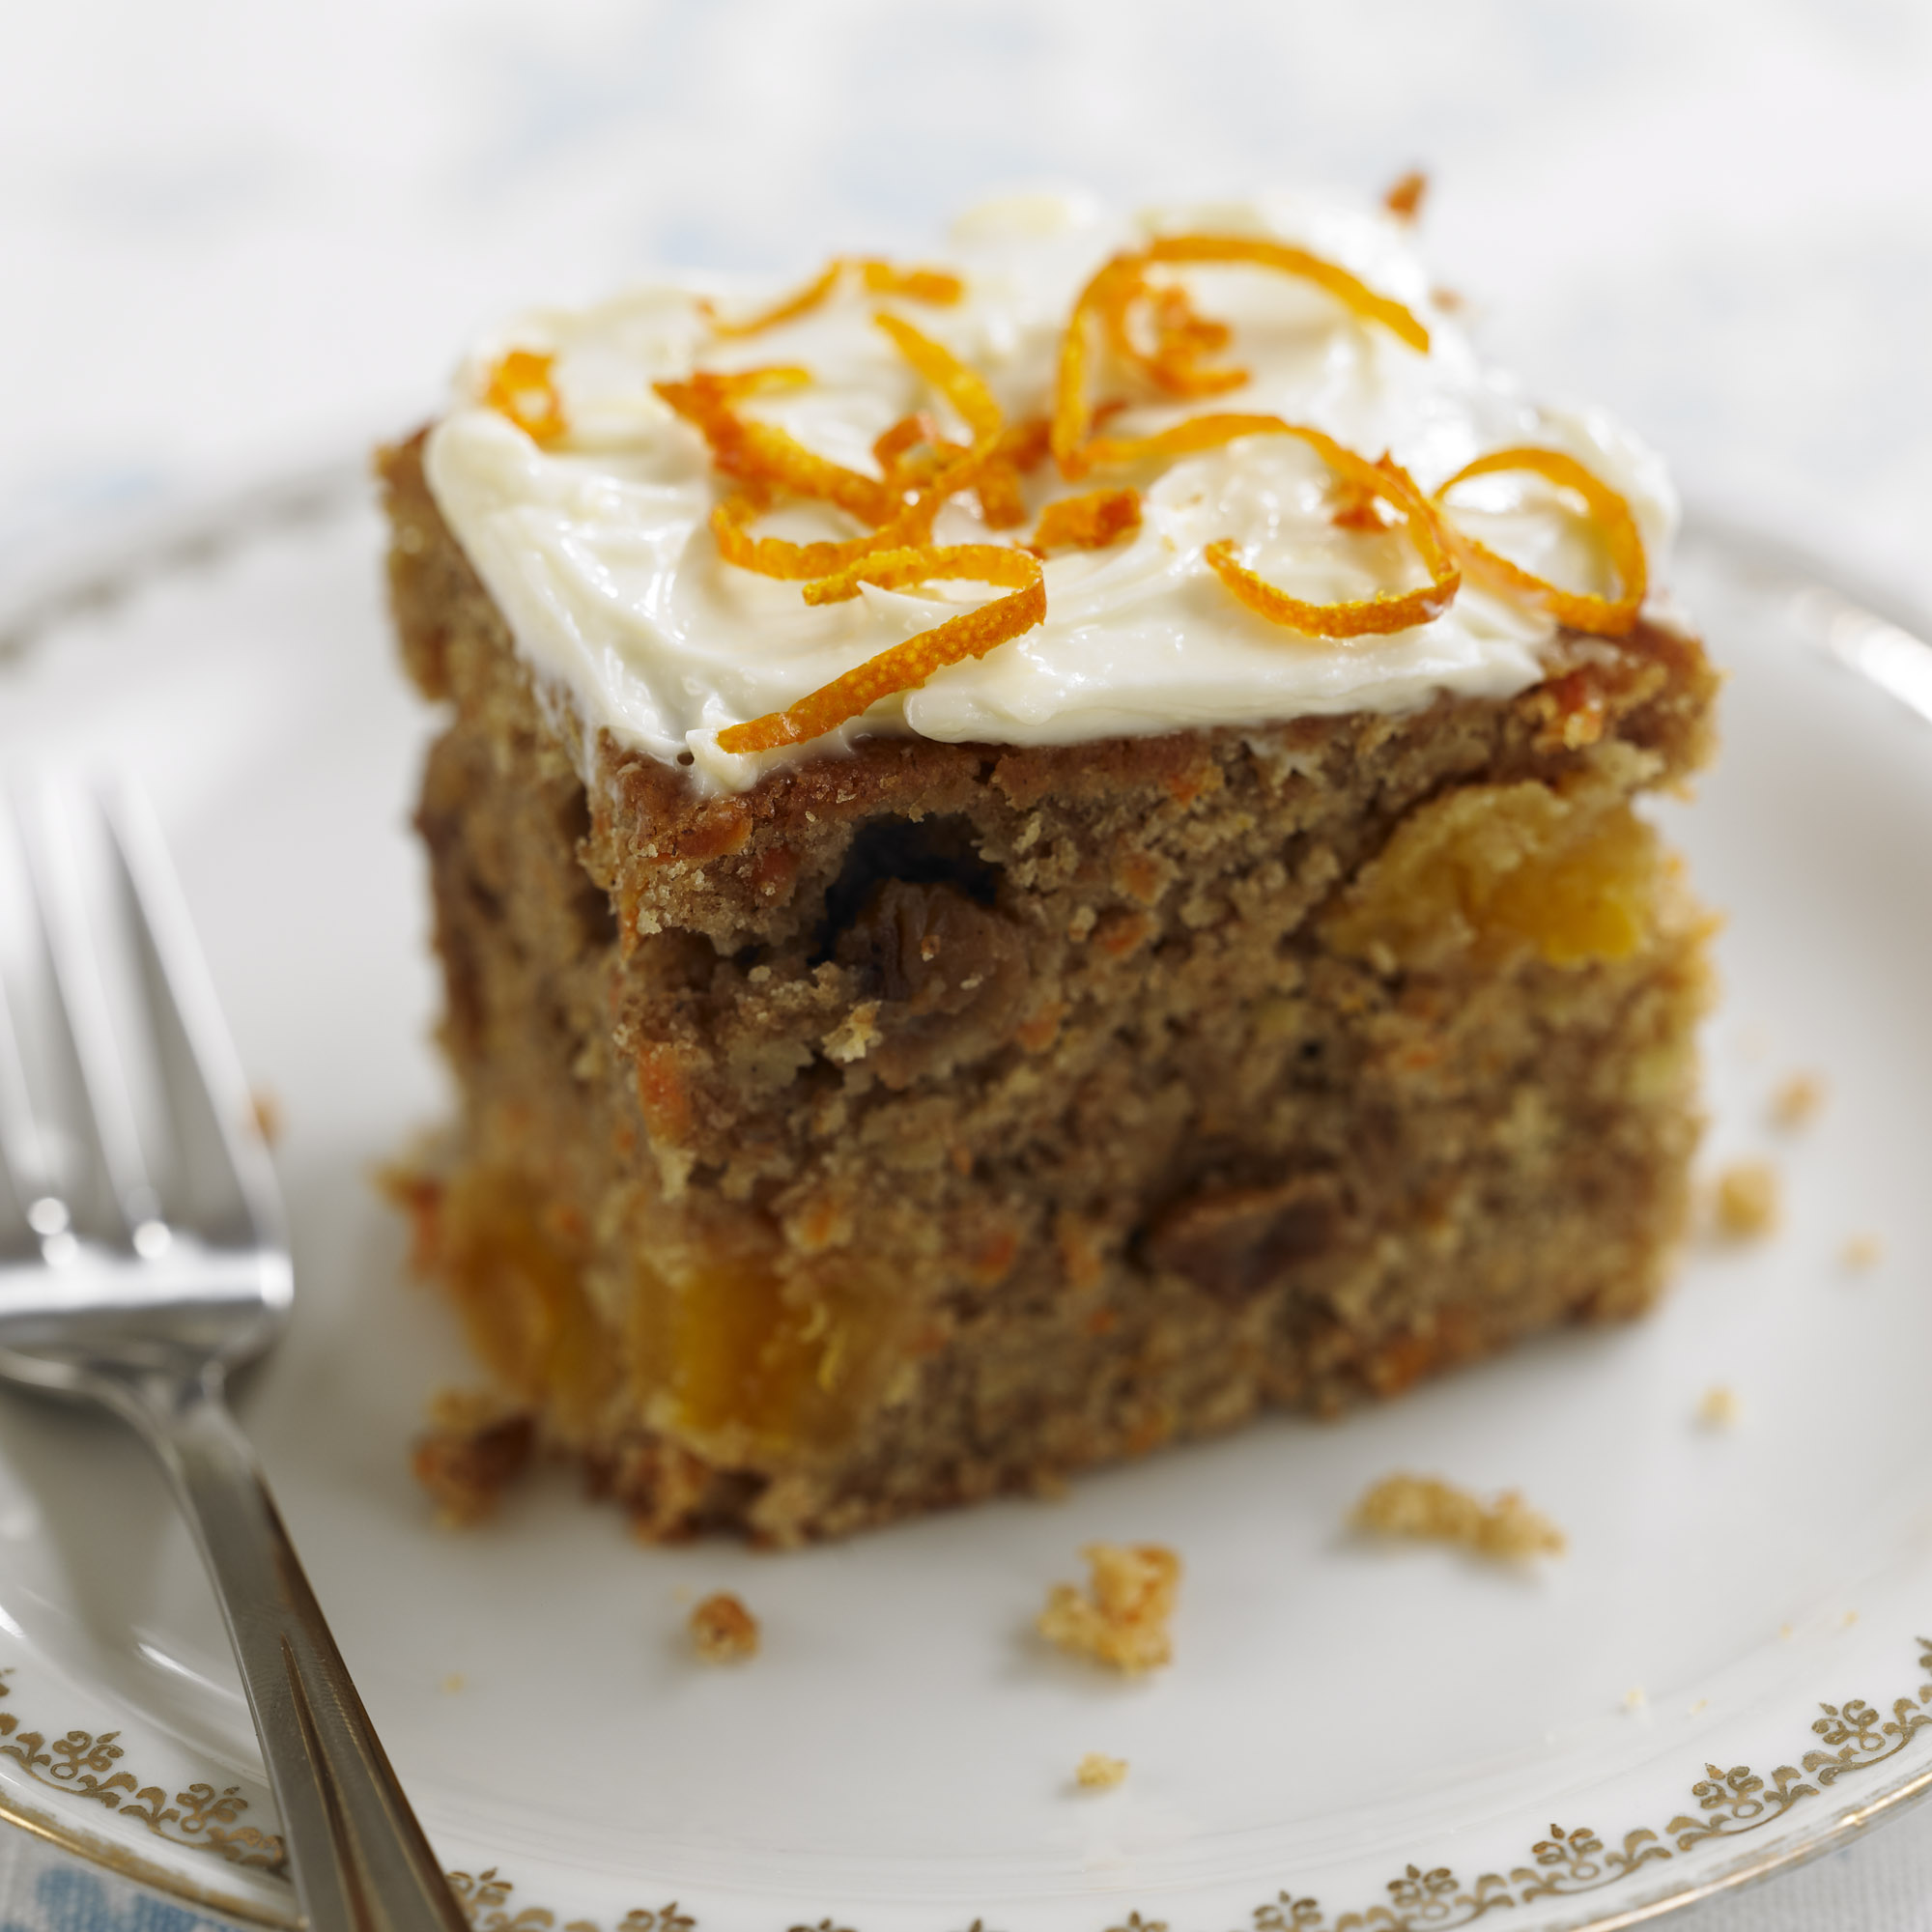 Make Orange Raisin Cake